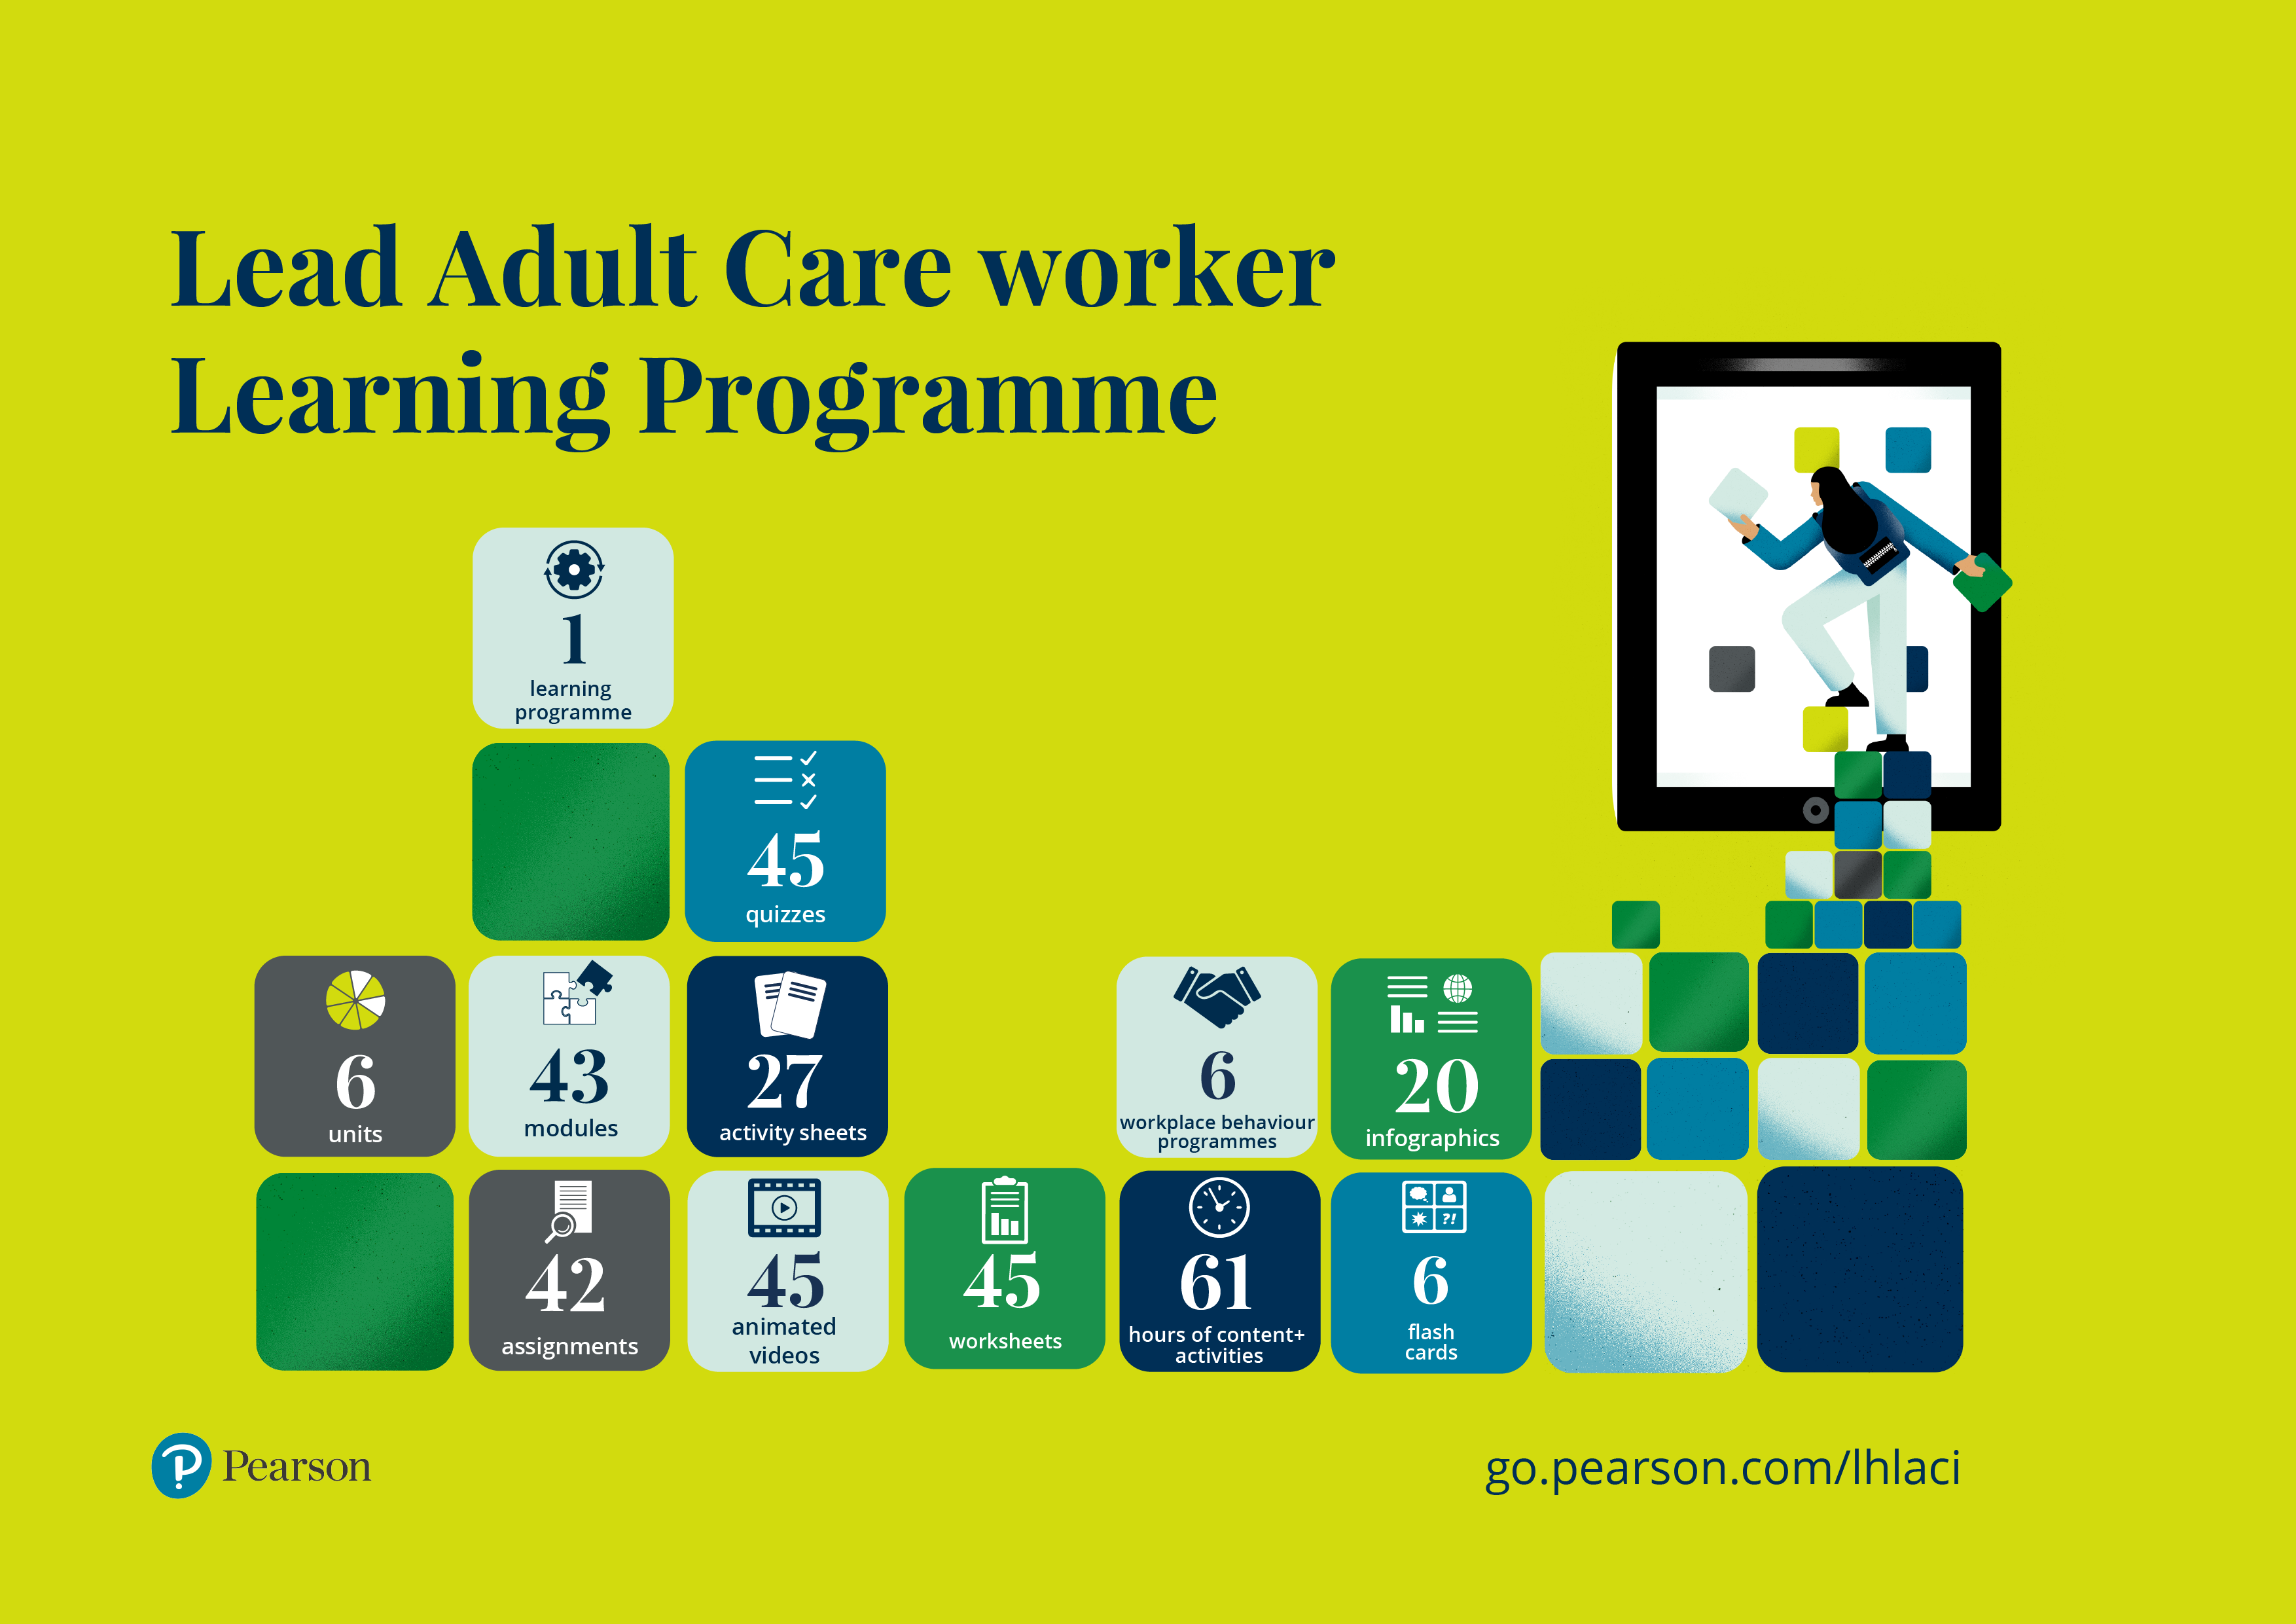 Lead Adult Care Worker infographic